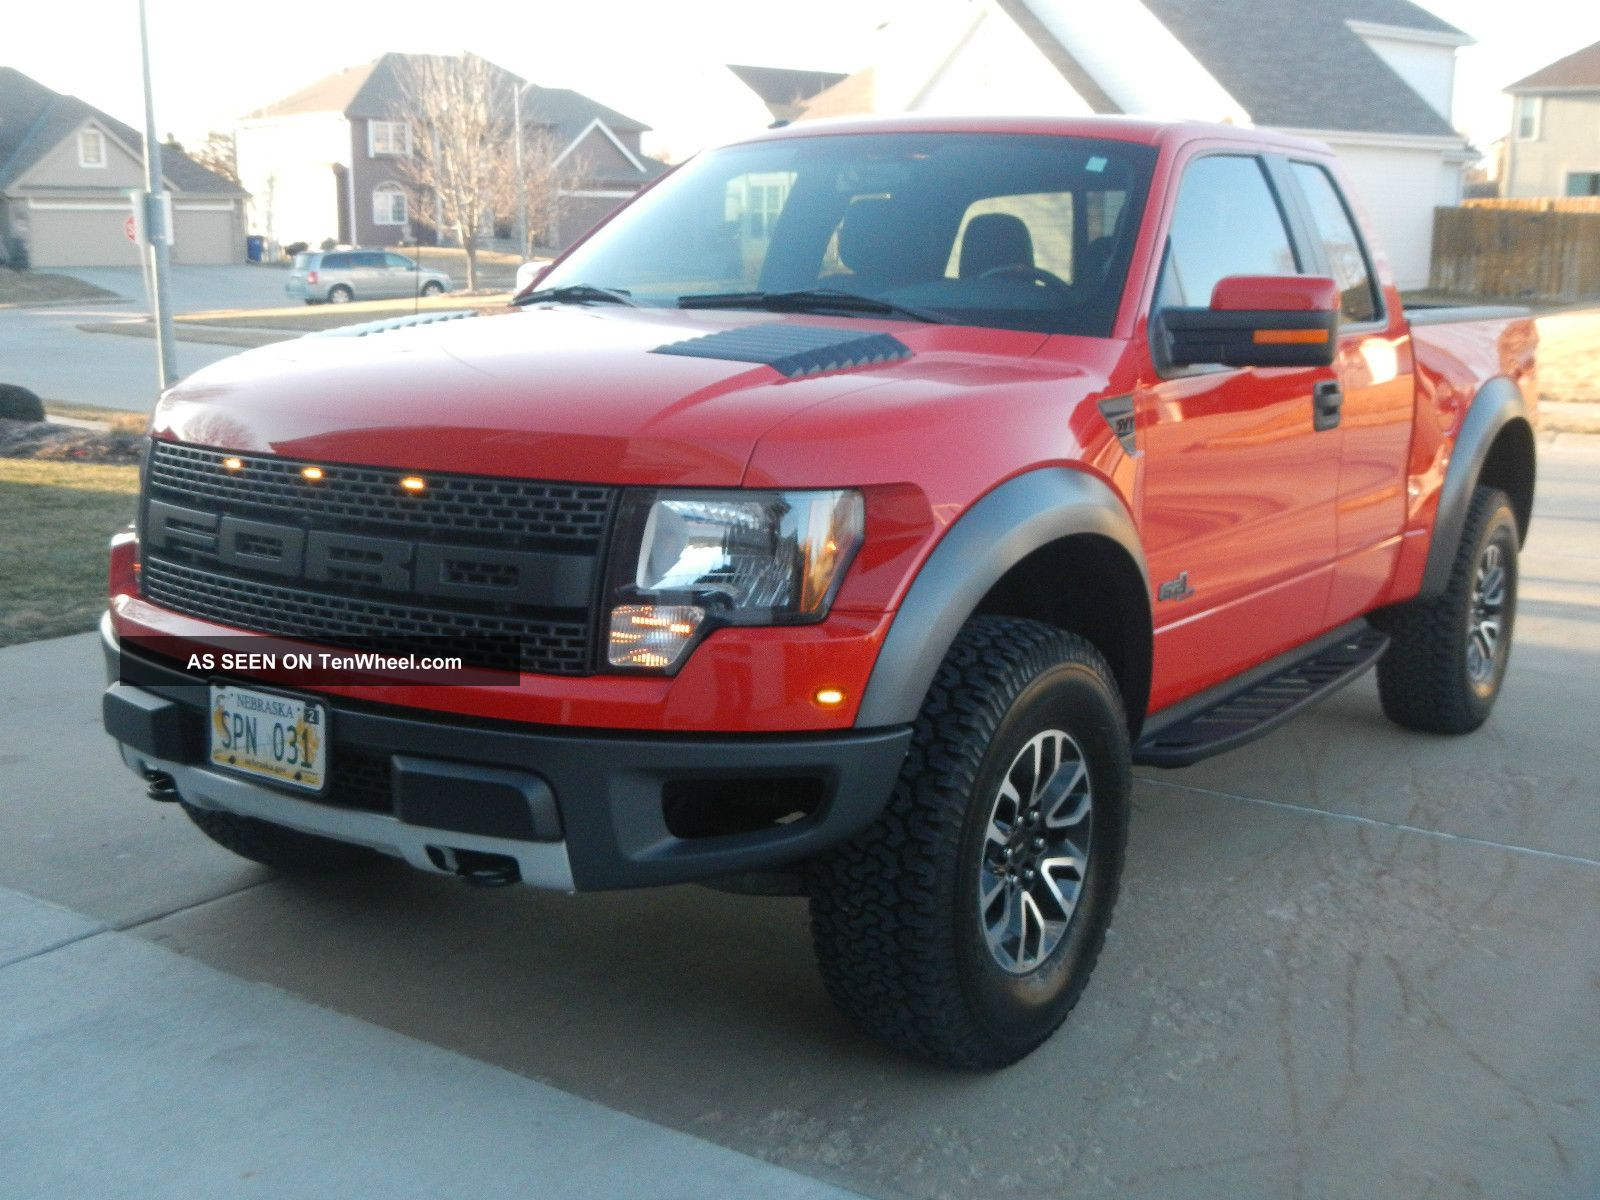 2012 ford f150 raptor svt extended cab 4 door 6 2 l. Black Bedroom Furniture Sets. Home Design Ideas